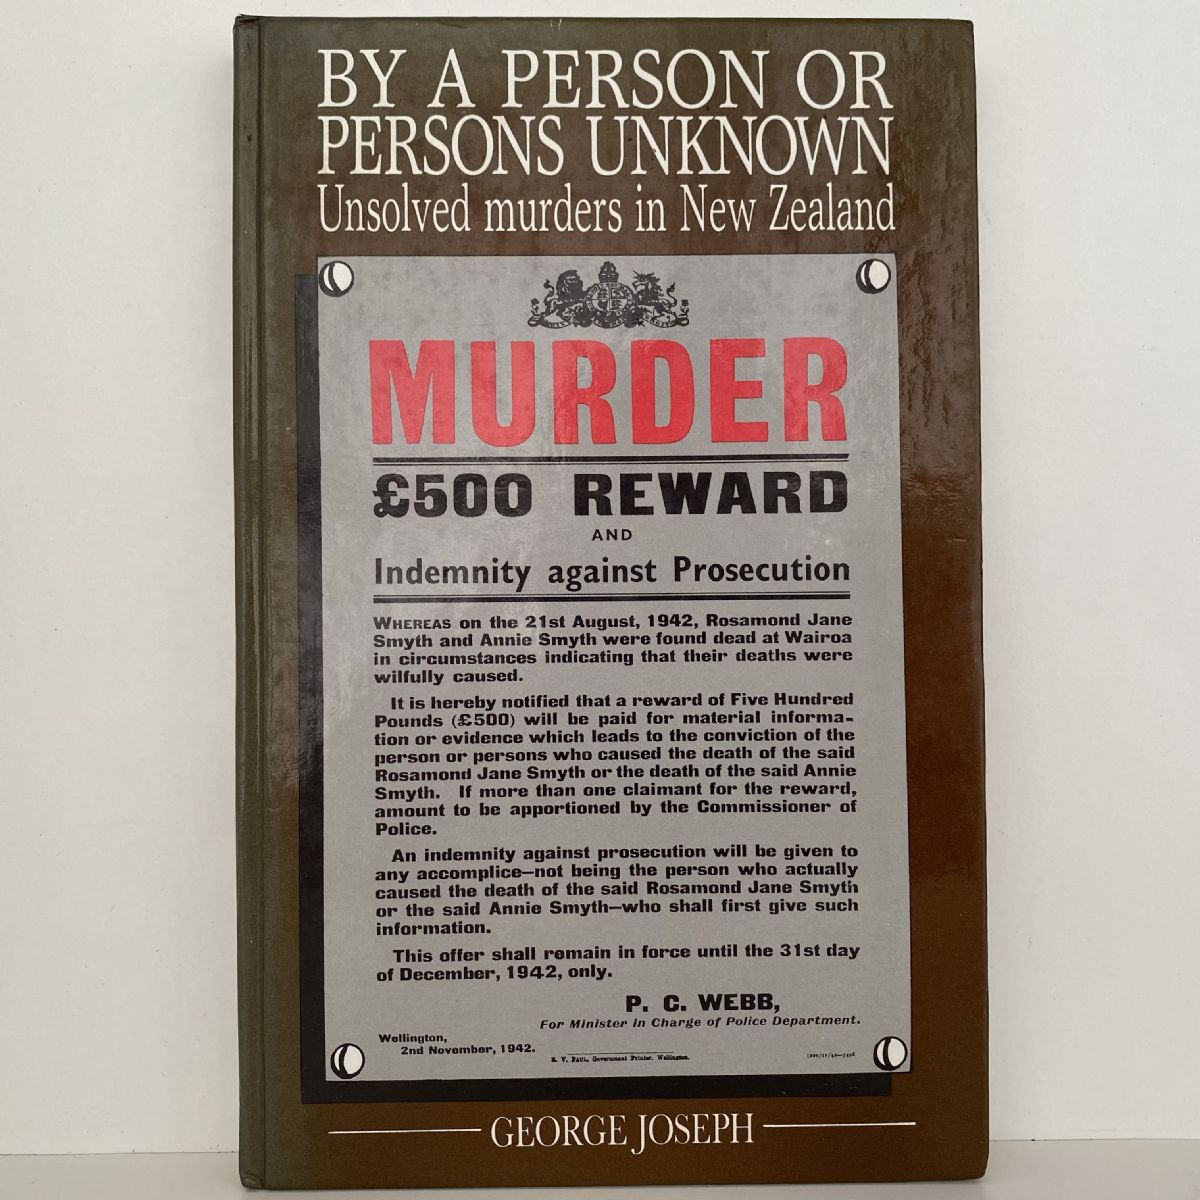 By A Person Or Persons Unknown: Unsolved Murders In New Zealand